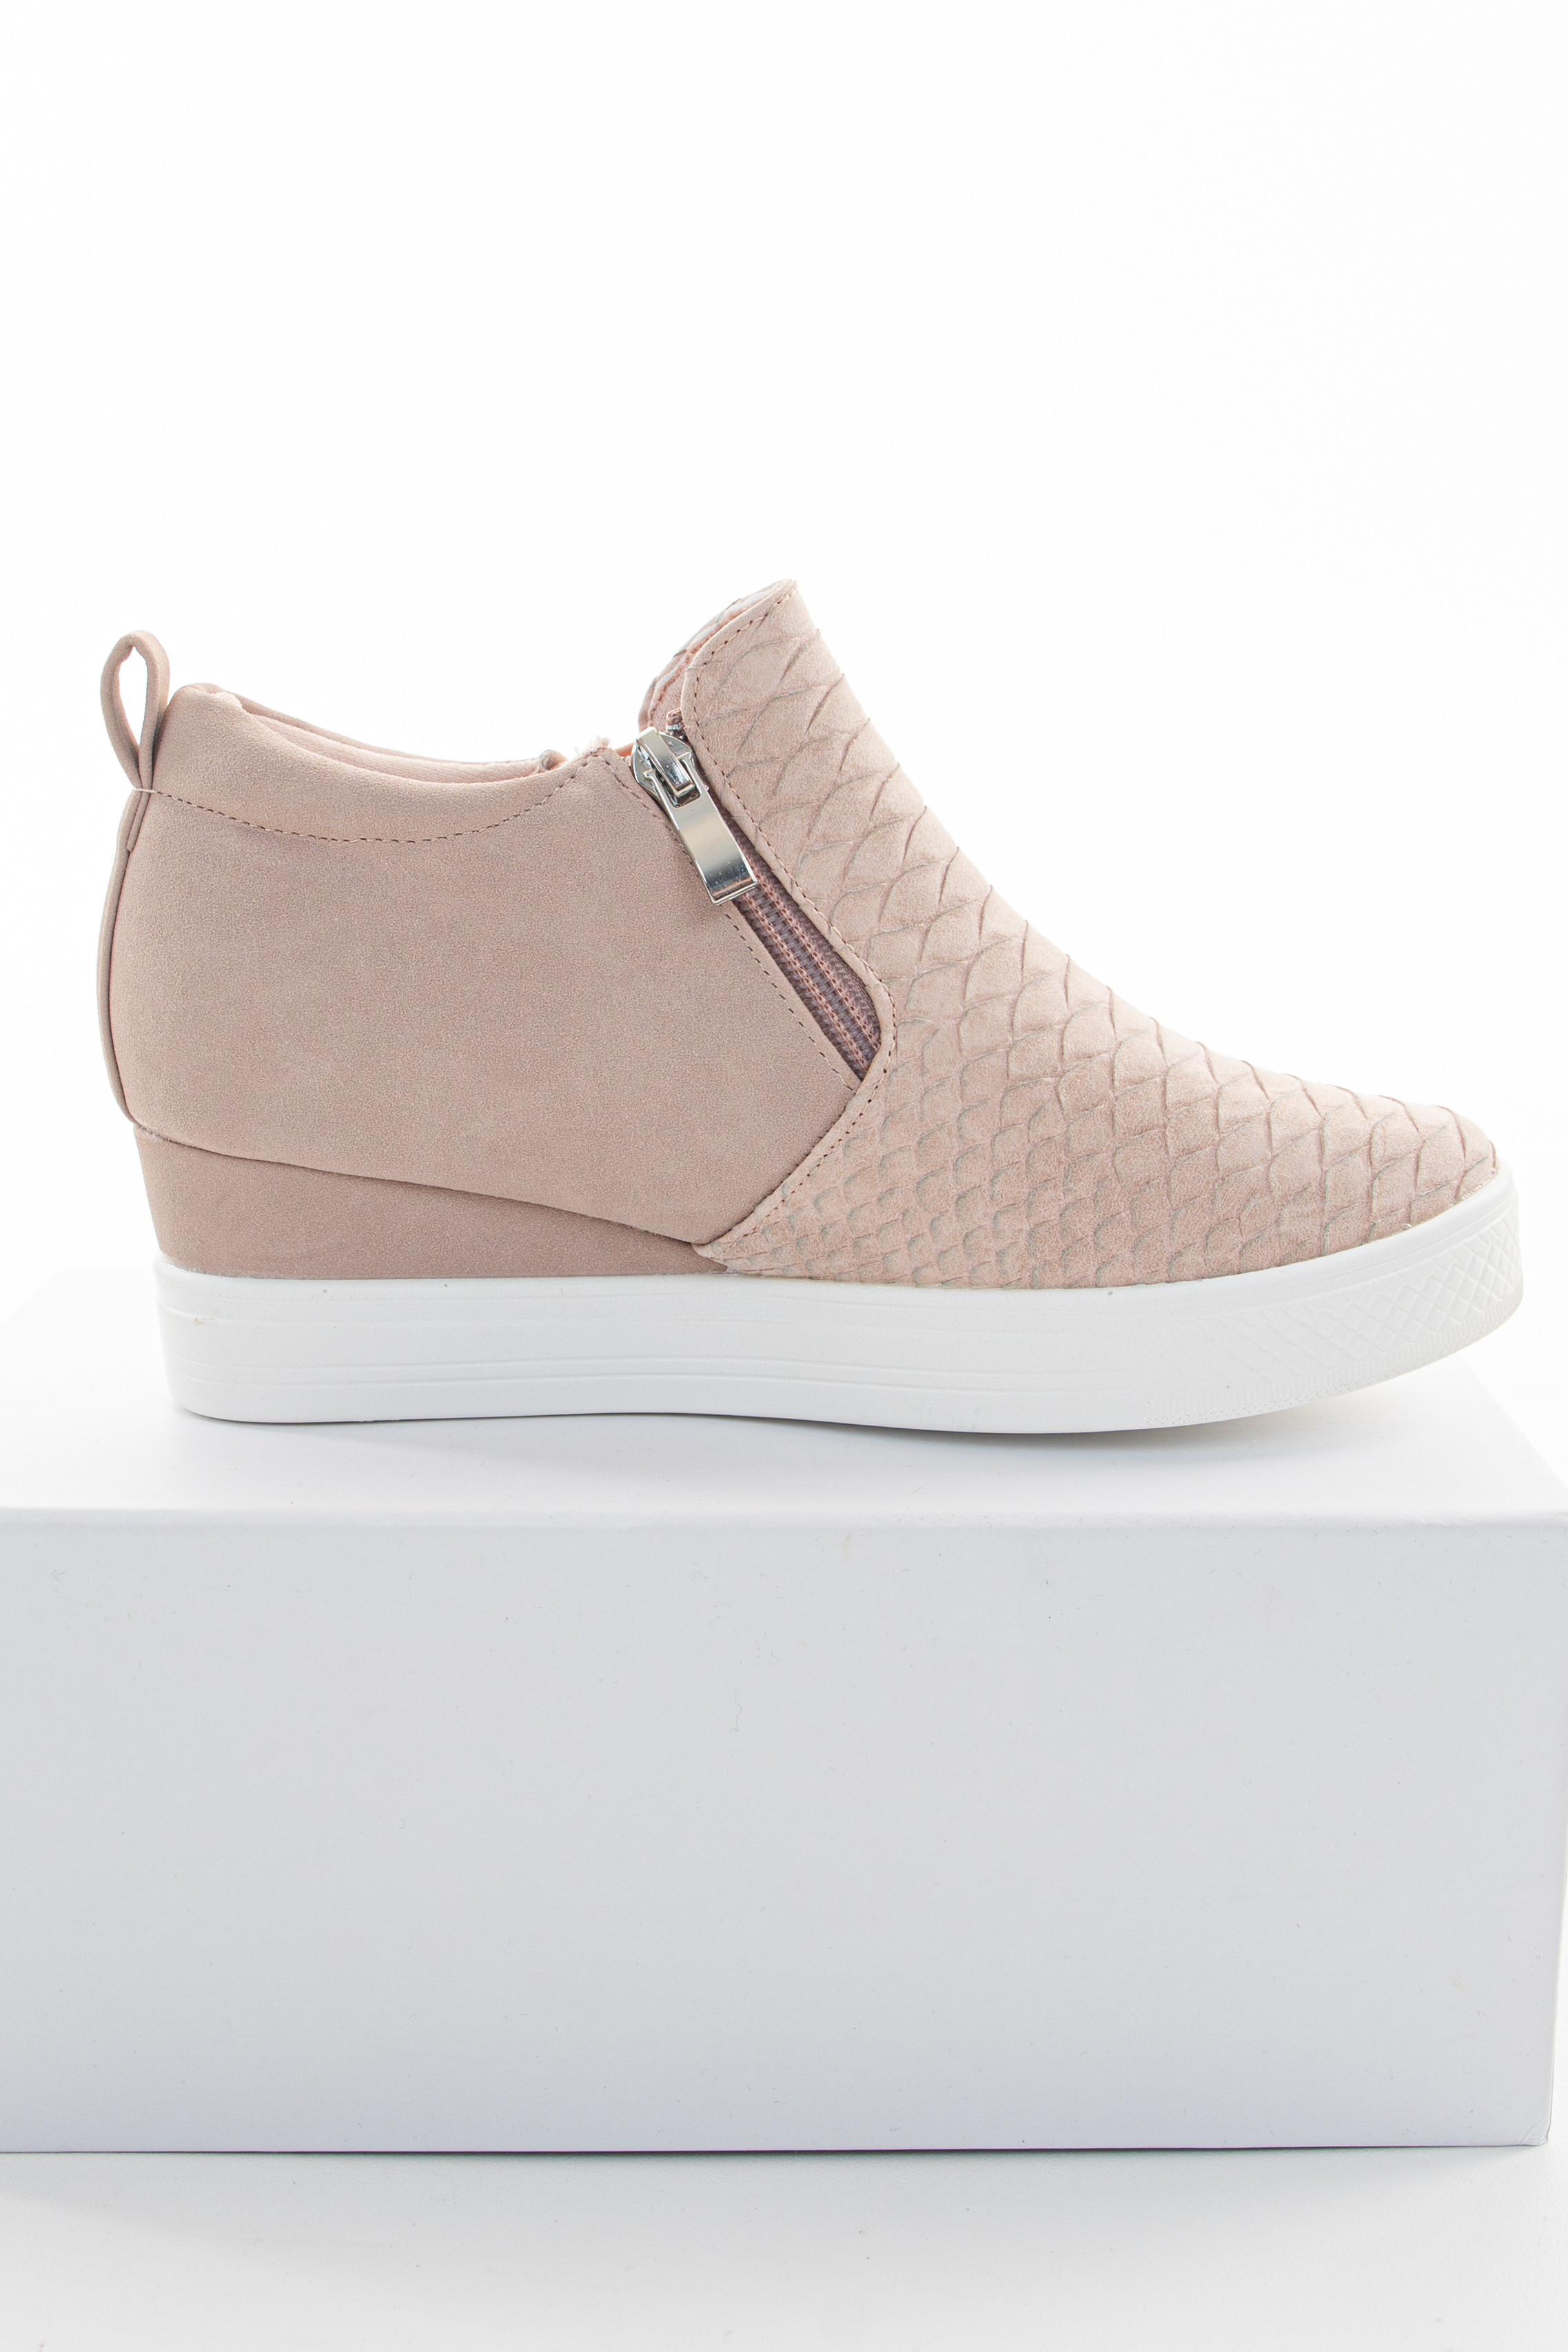 Blush Textured Sneaker Wedges with White Rubber Sole